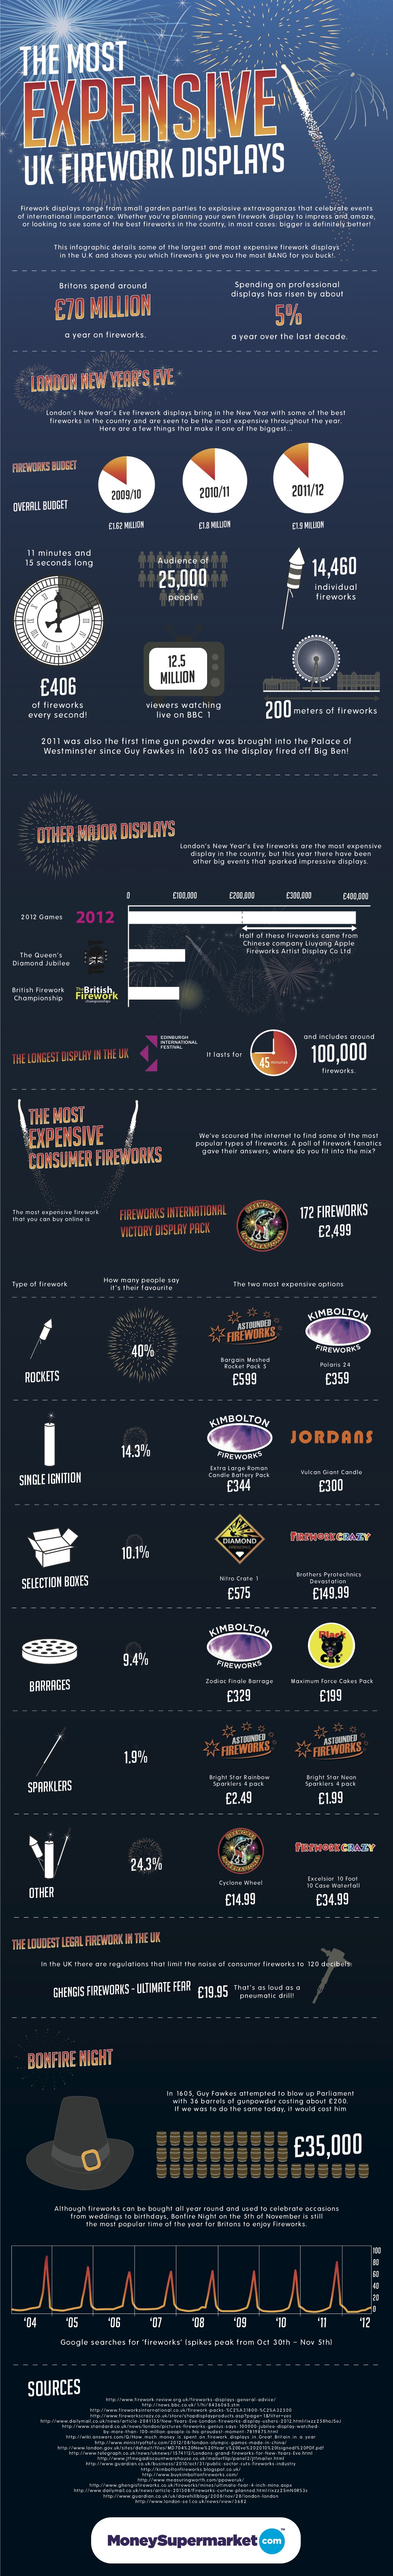 The most expensive UK firework displays